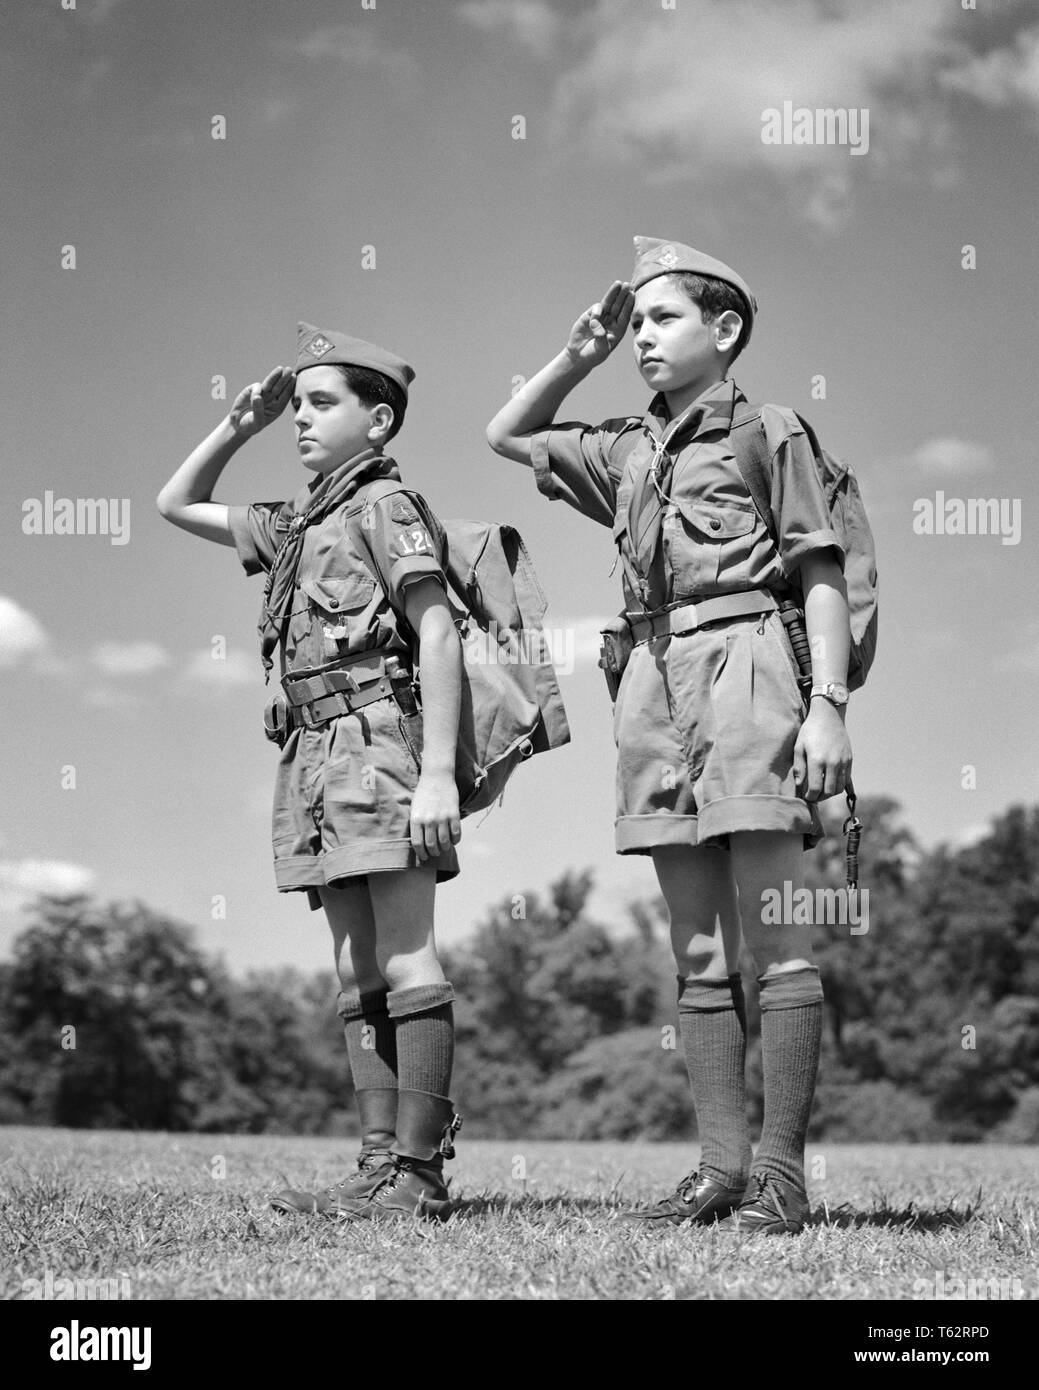 6b691d9ecbc 1950s TWO BOY SCOUTS WEARING SUMMER UNIFORMS STANDING AT ATTENTION EQUIPPED  WITH BACKPACKS THREE FINGER HAND SALUTING - b6033 HAR001 HARS HEALTHINESS  HOME ...